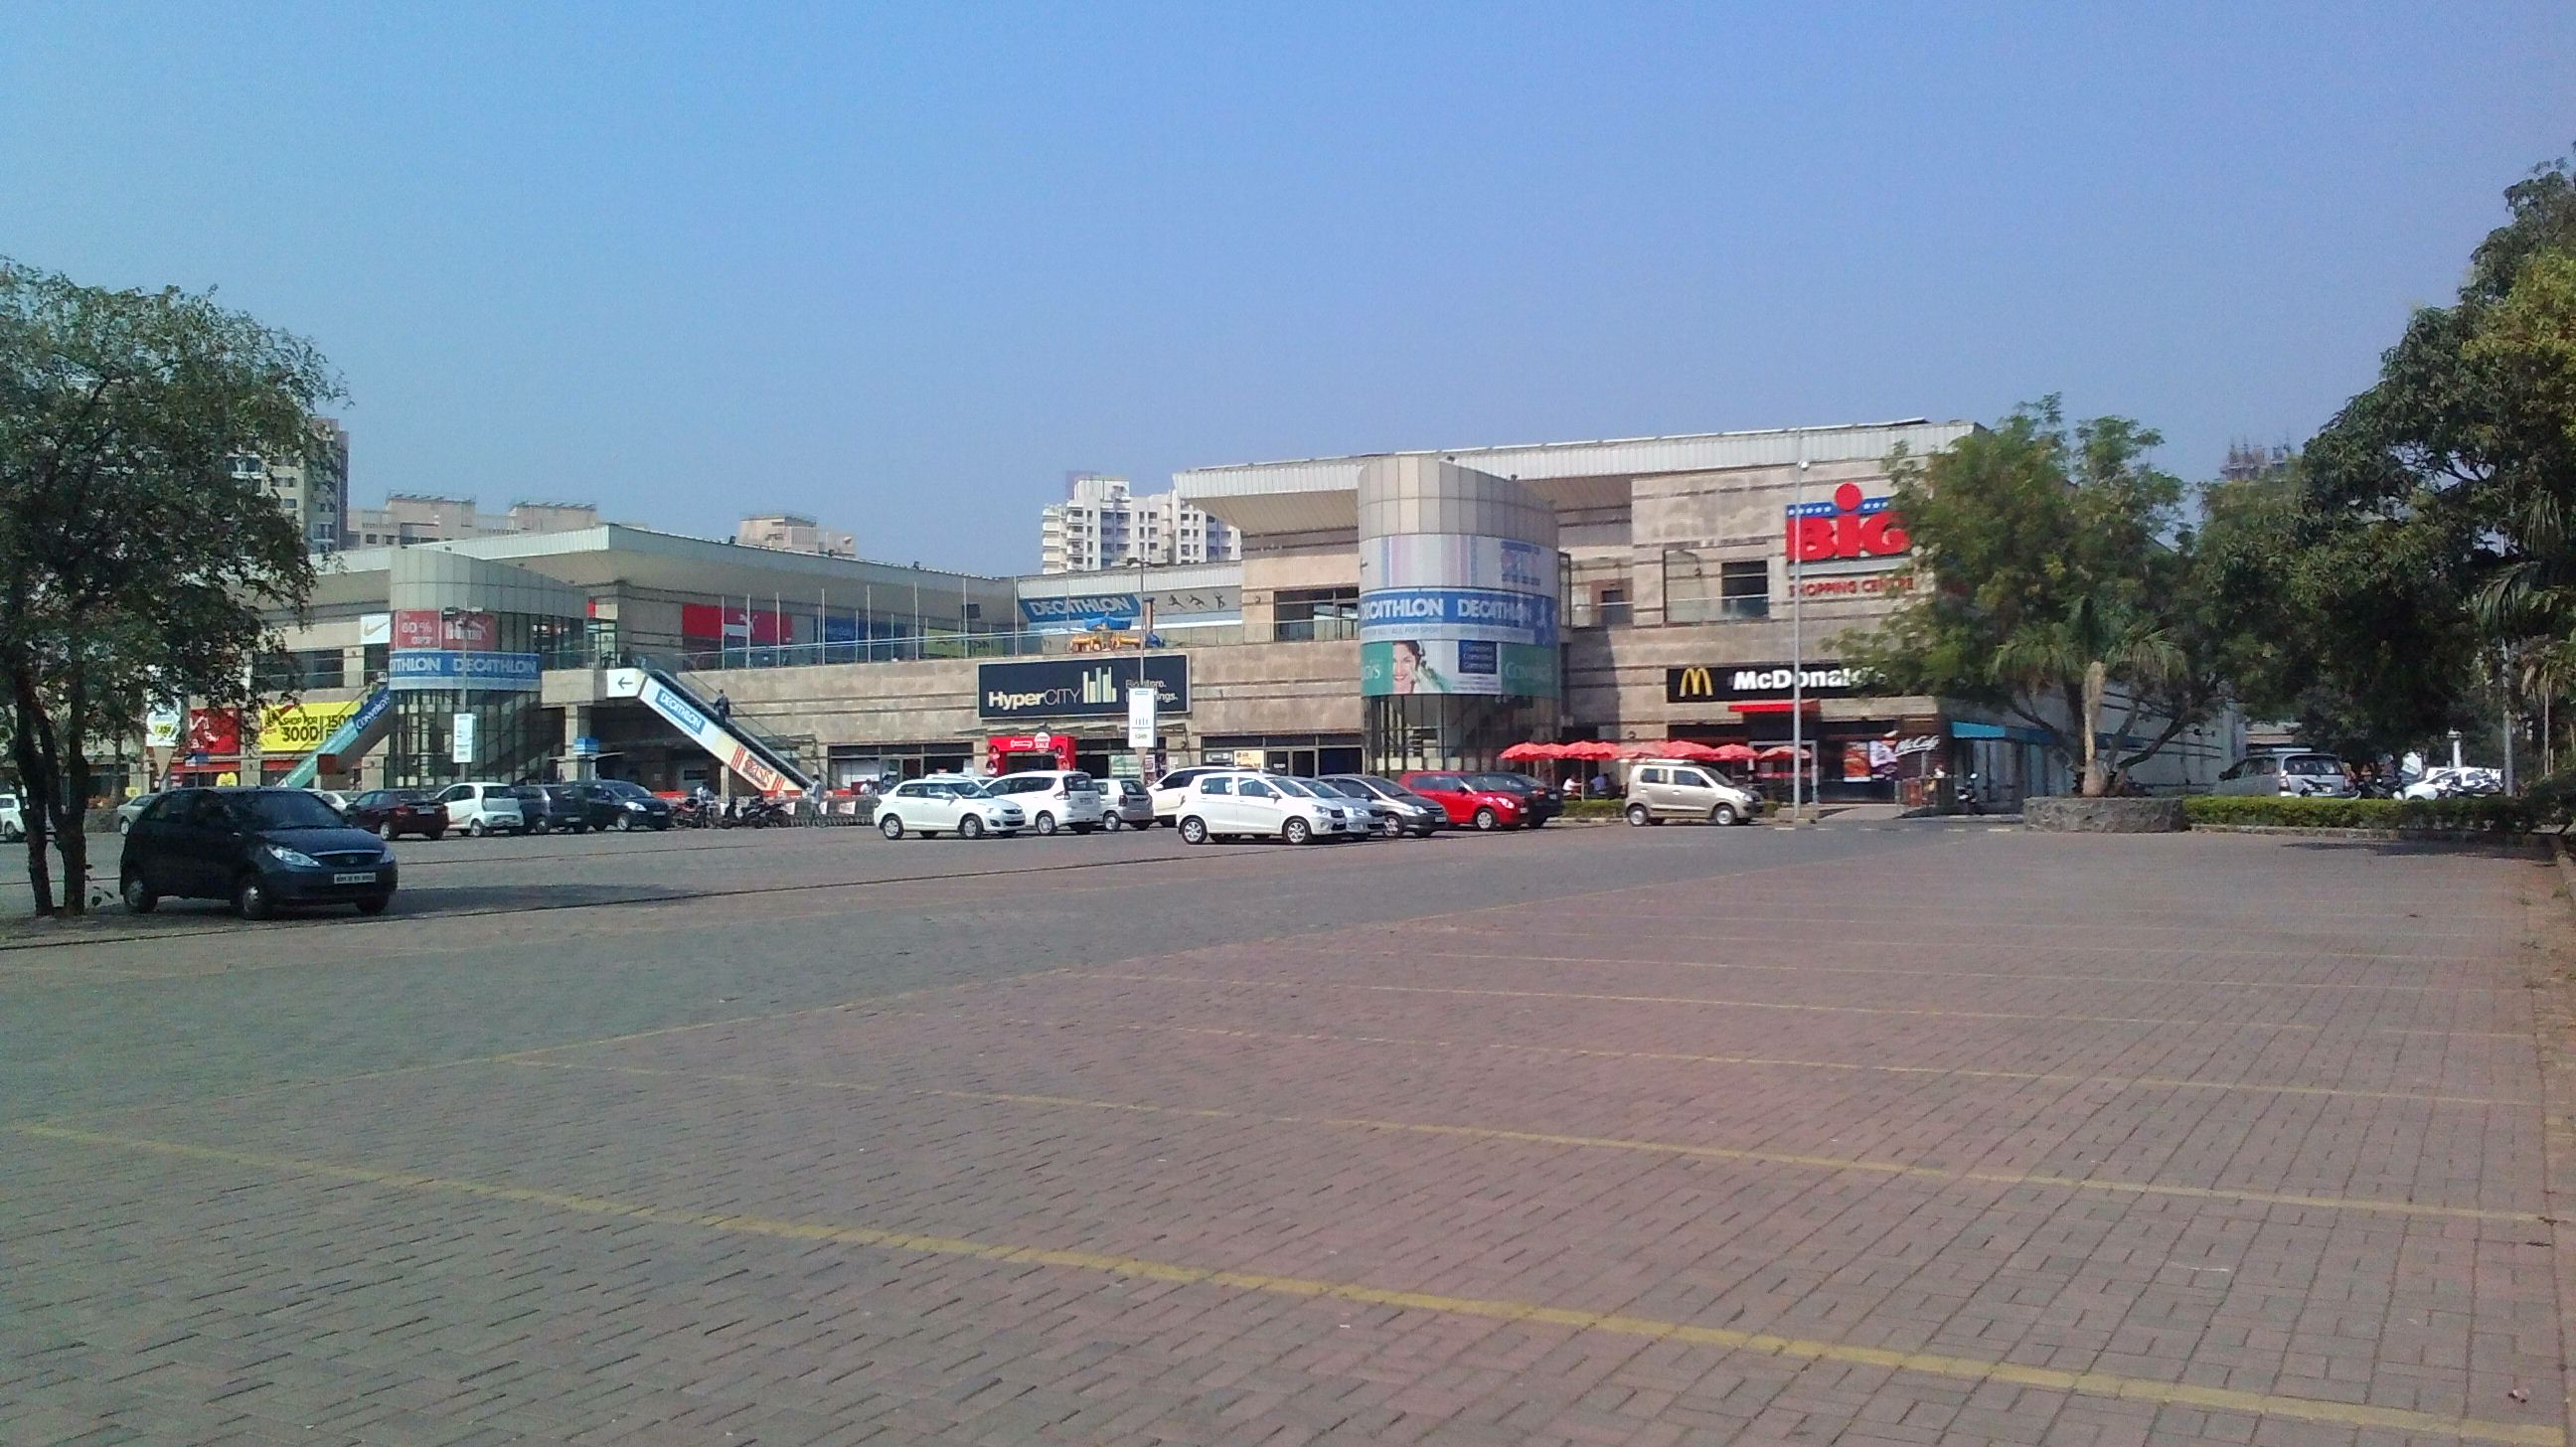 Commercial Office Space for Rent in Commercial Office Space for Rent in Ghodbunder Roa Near Hypercity Mall, Thane-West, Mumbai